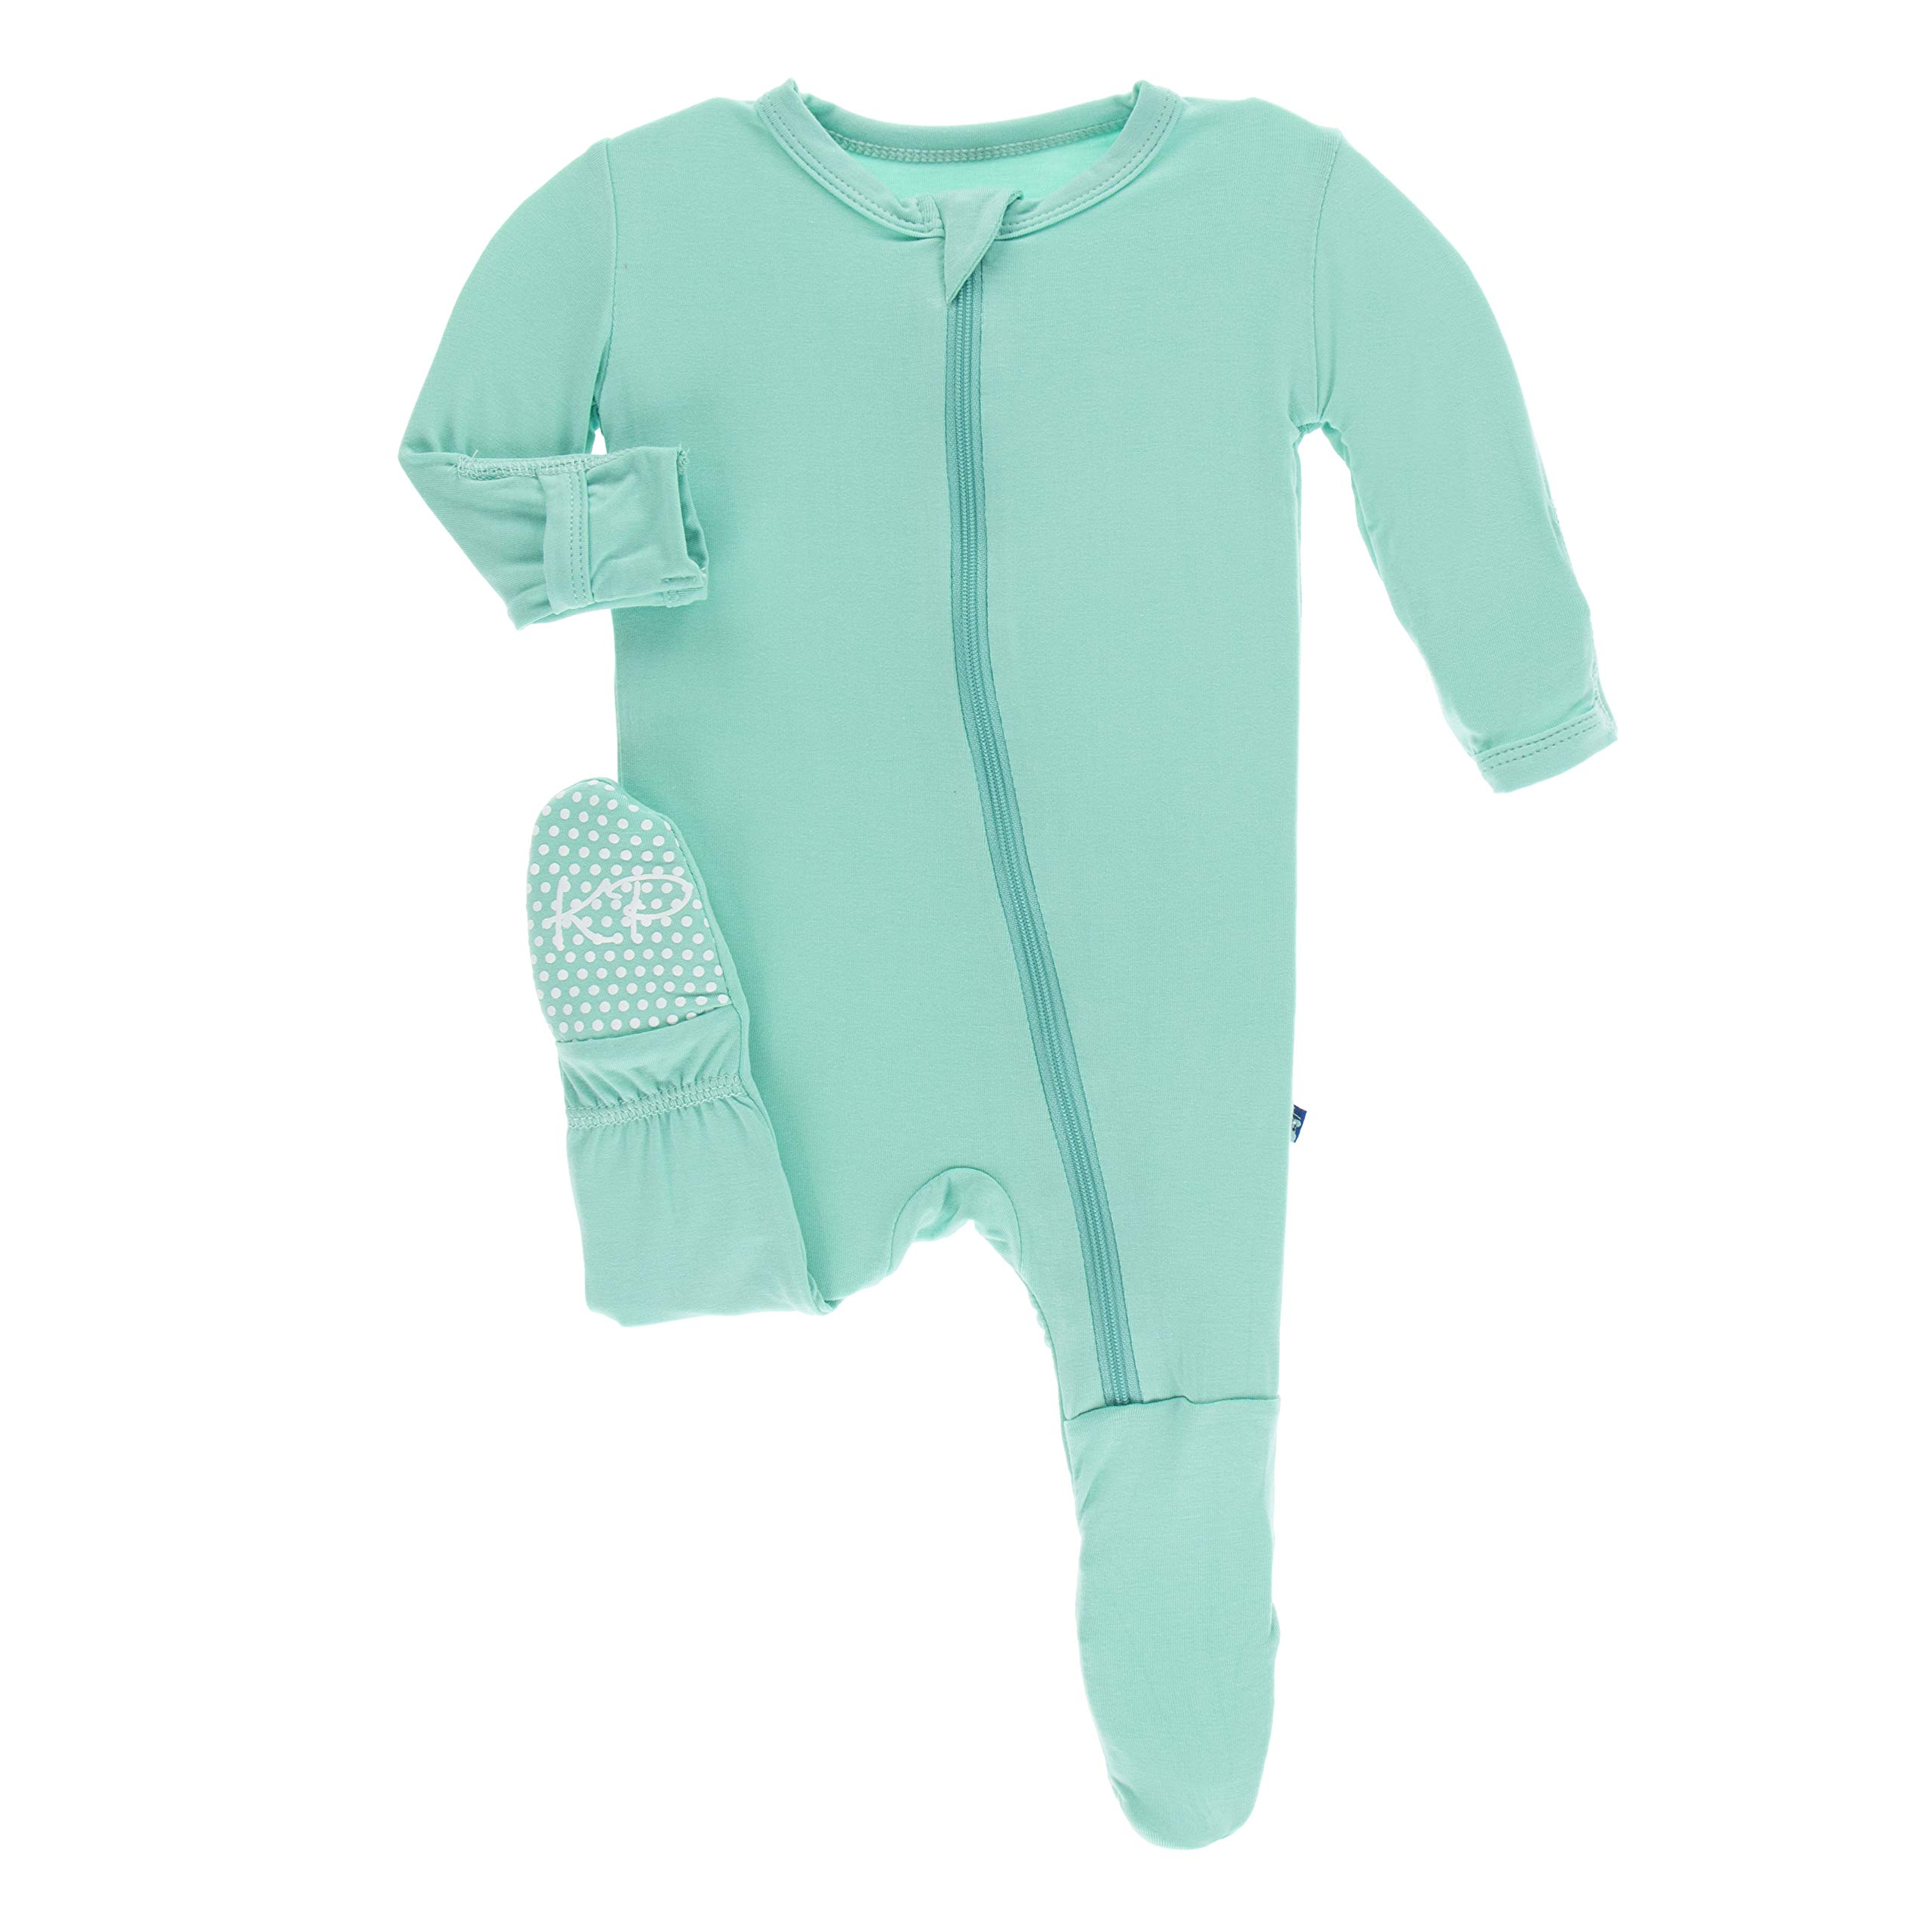 Kickee Pants Little Boys Solid Footie with Zipper - Glacier, 3-6 Months